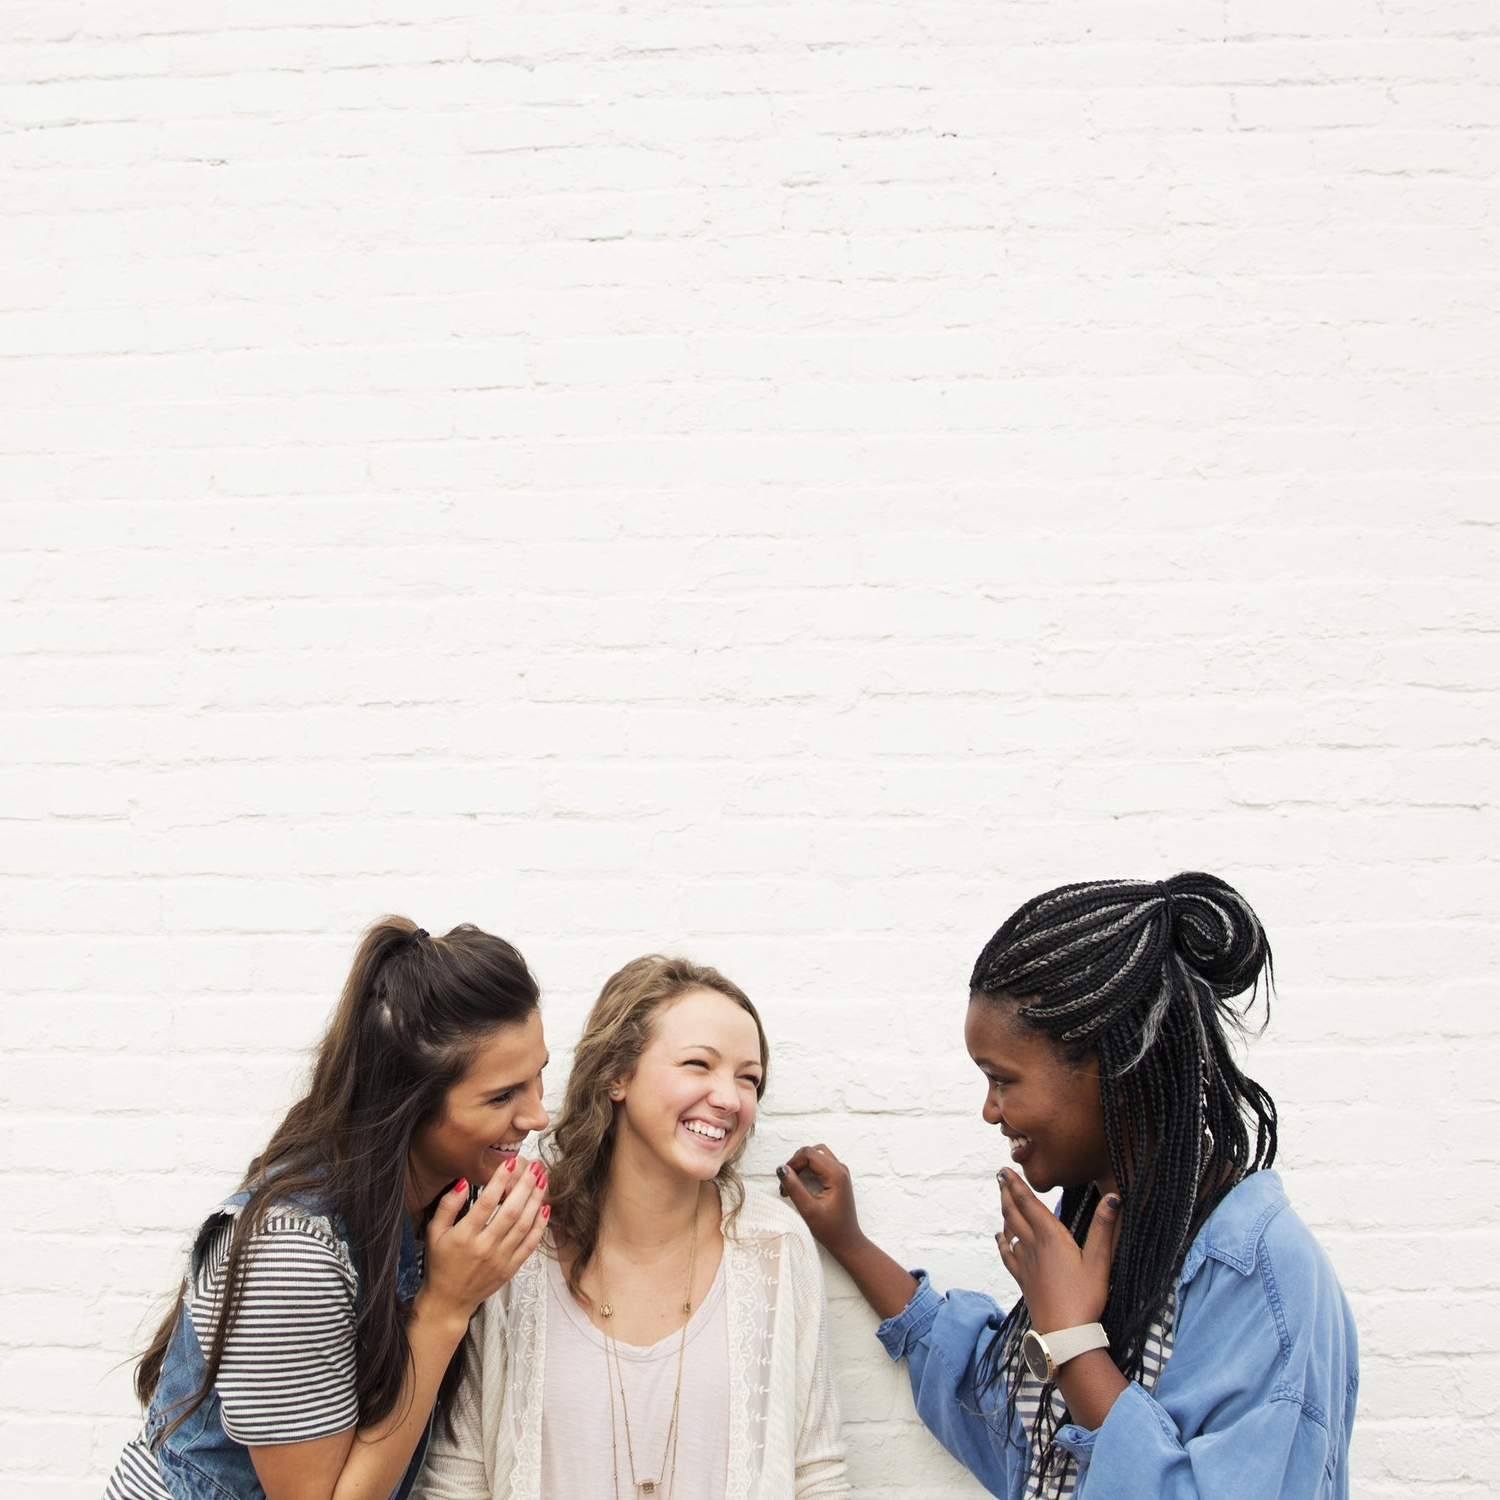 Women @ The Springs - We challenge each other in the small things and in the big things, building friendships and holding each other accountable for the plans God has for us.